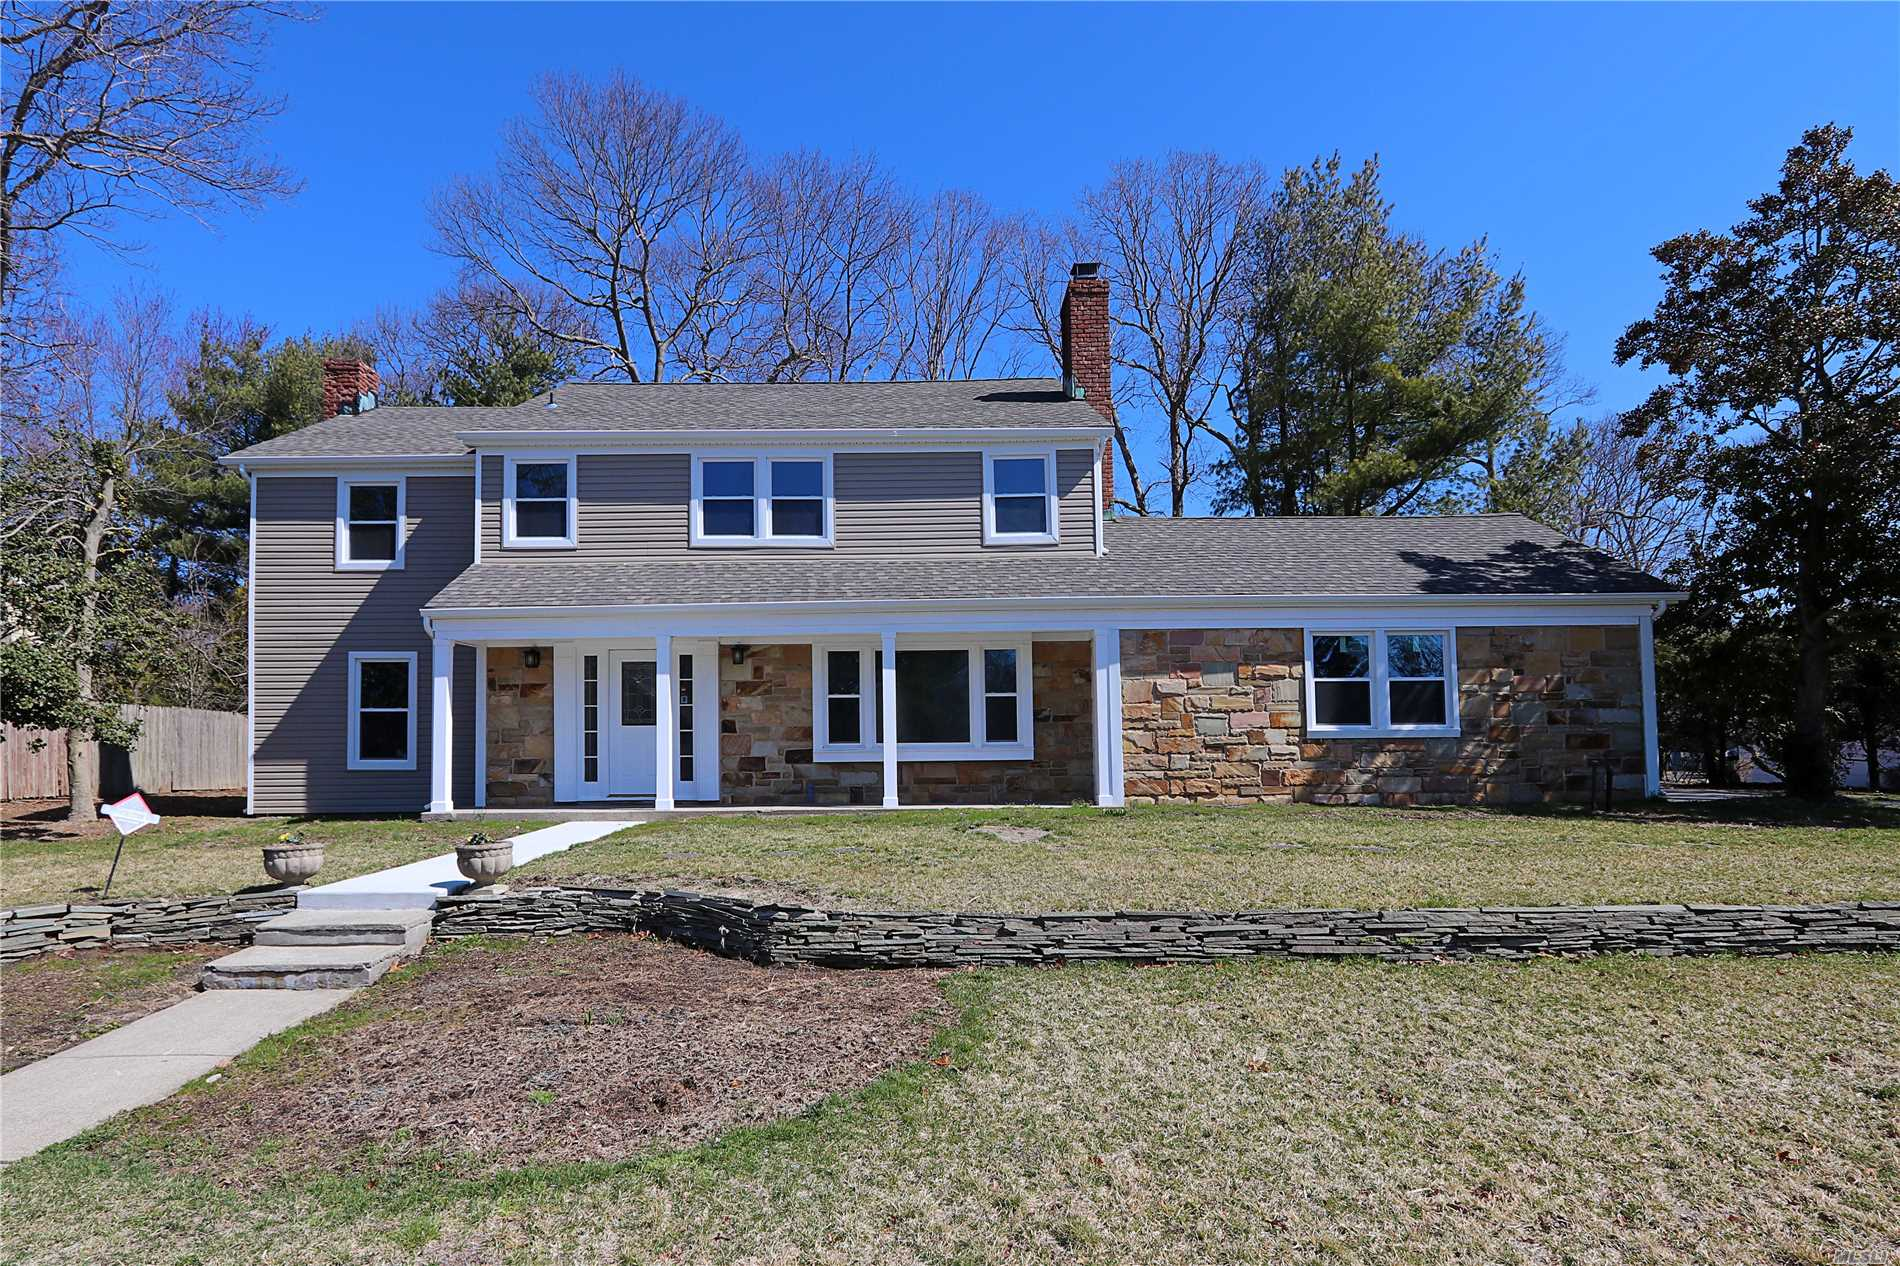 Don't miss out on this newly renovated 5 bdrm 3.5 bath colonial on quiet street in much sought after neighborhood of Coram! Home boasts CAC, 2 fpls, granite countertops, ss appliances, 2-car garage, master-suite with his and her closets and more! There is a massive great room off kitchen, making the possibilities and entertainment opportunities in this home endless!